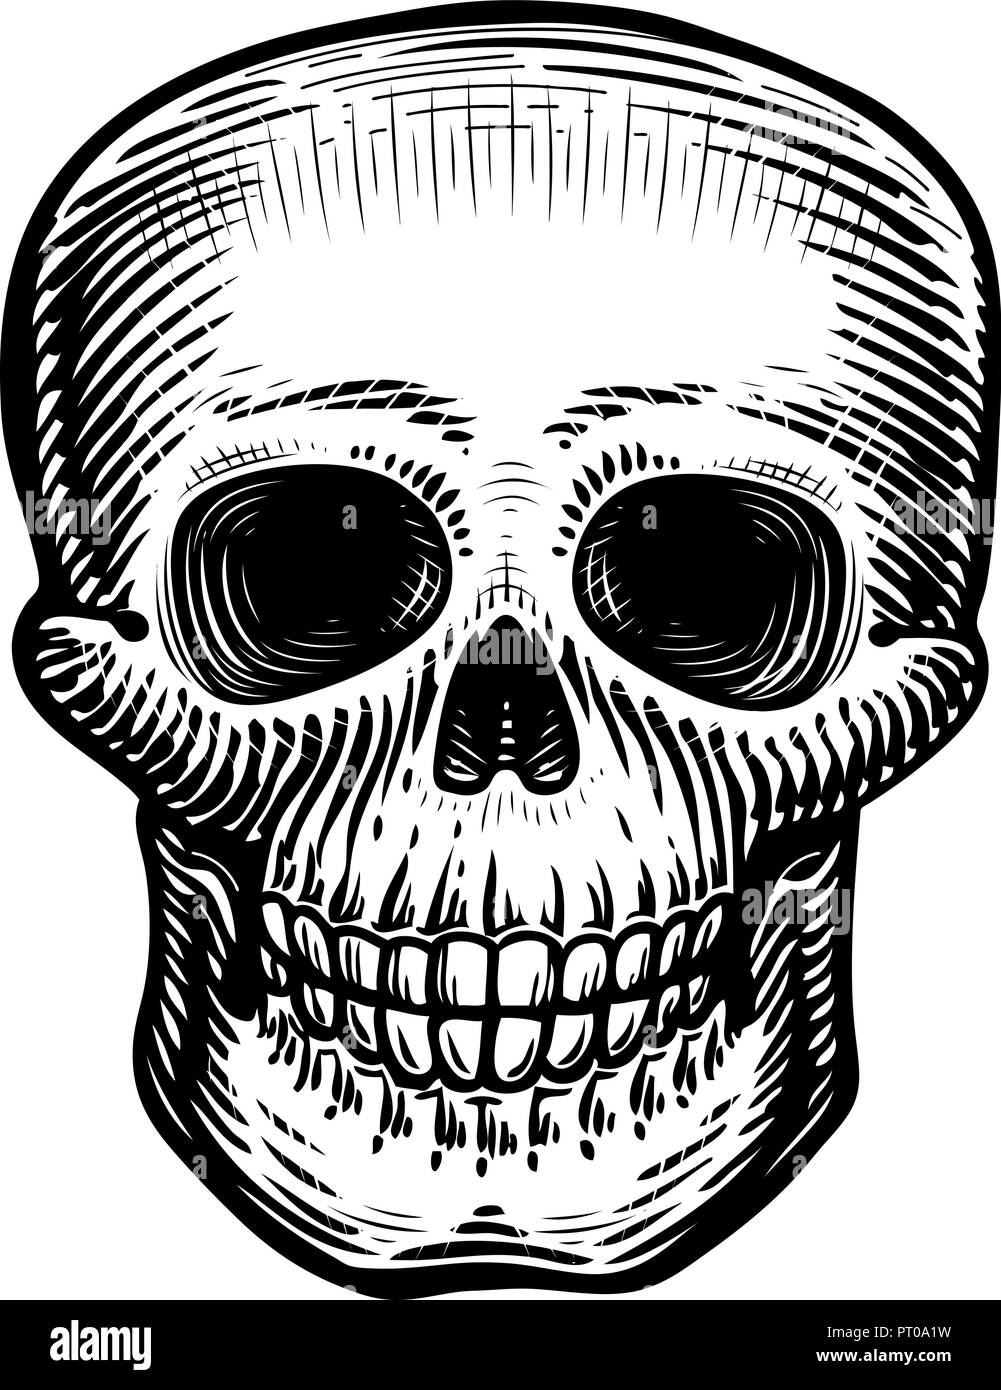 dc4d96980458a Human skull, sketch. Hand-drawn skeleton, zombie or dead. Vintage vector